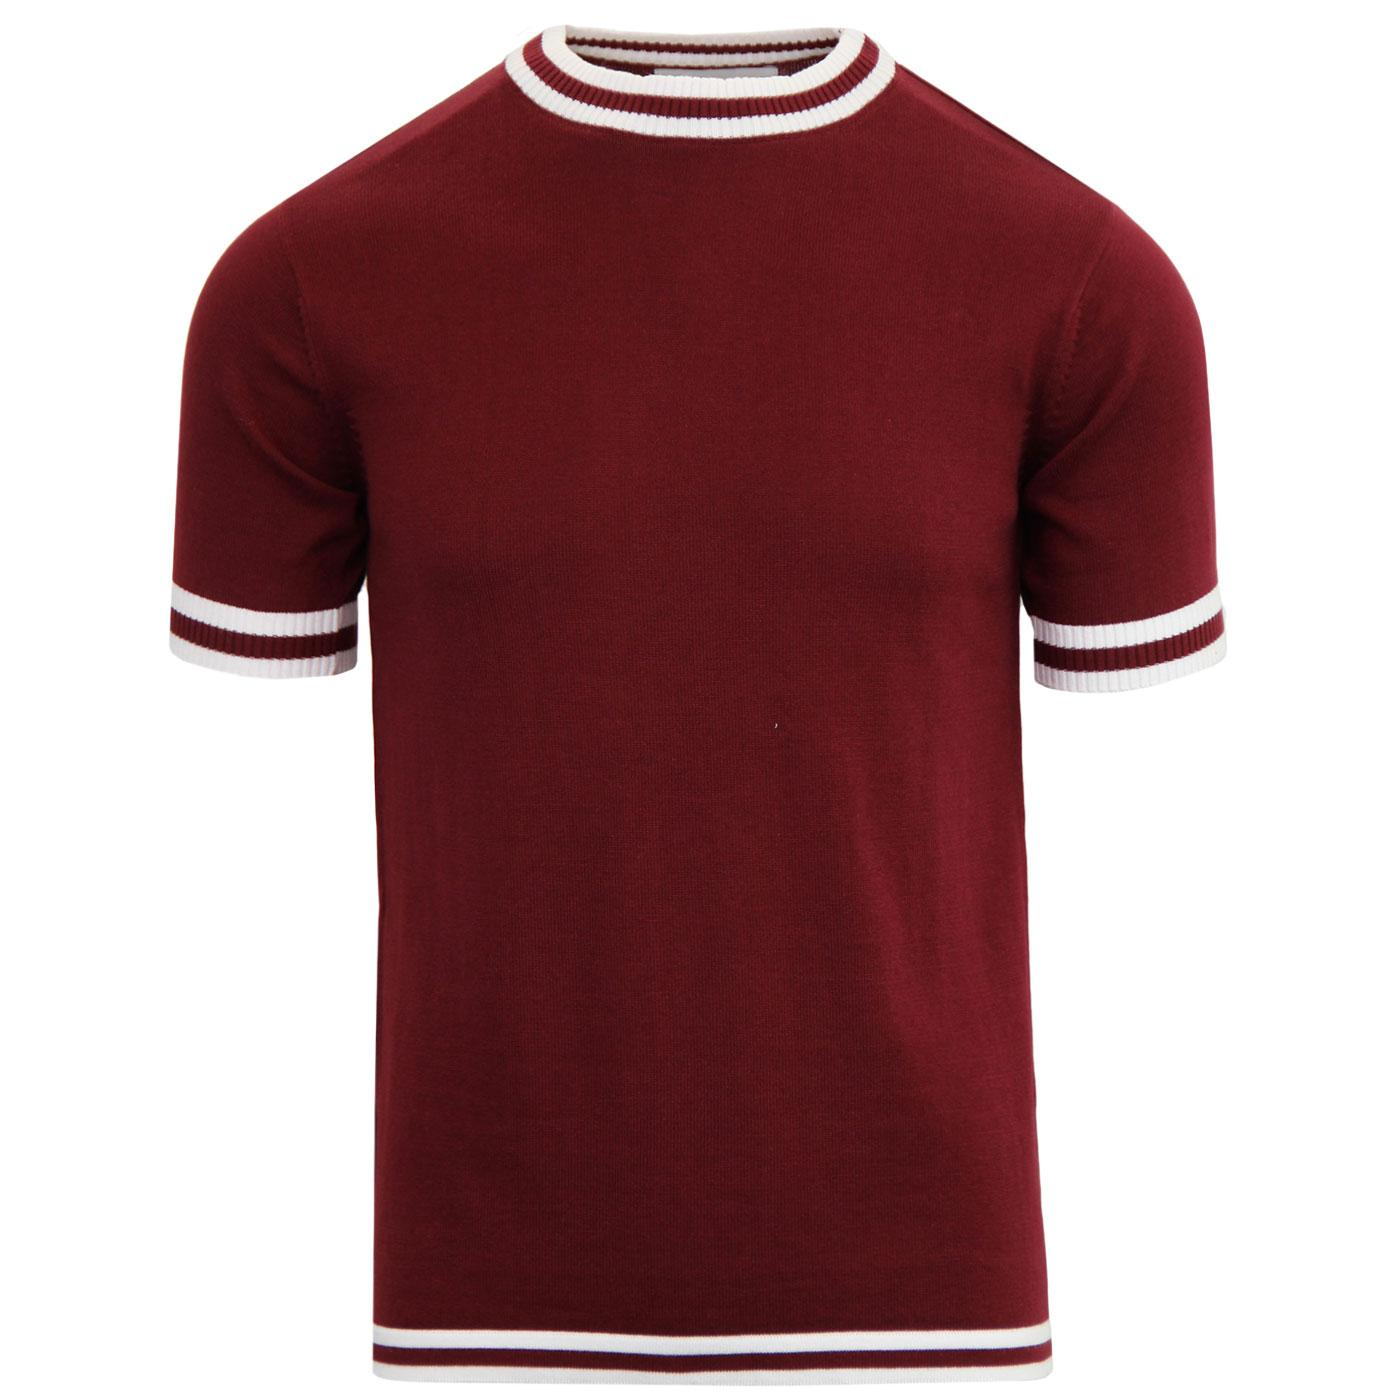 madcap england moon 60s mod knitted tee zinfandel